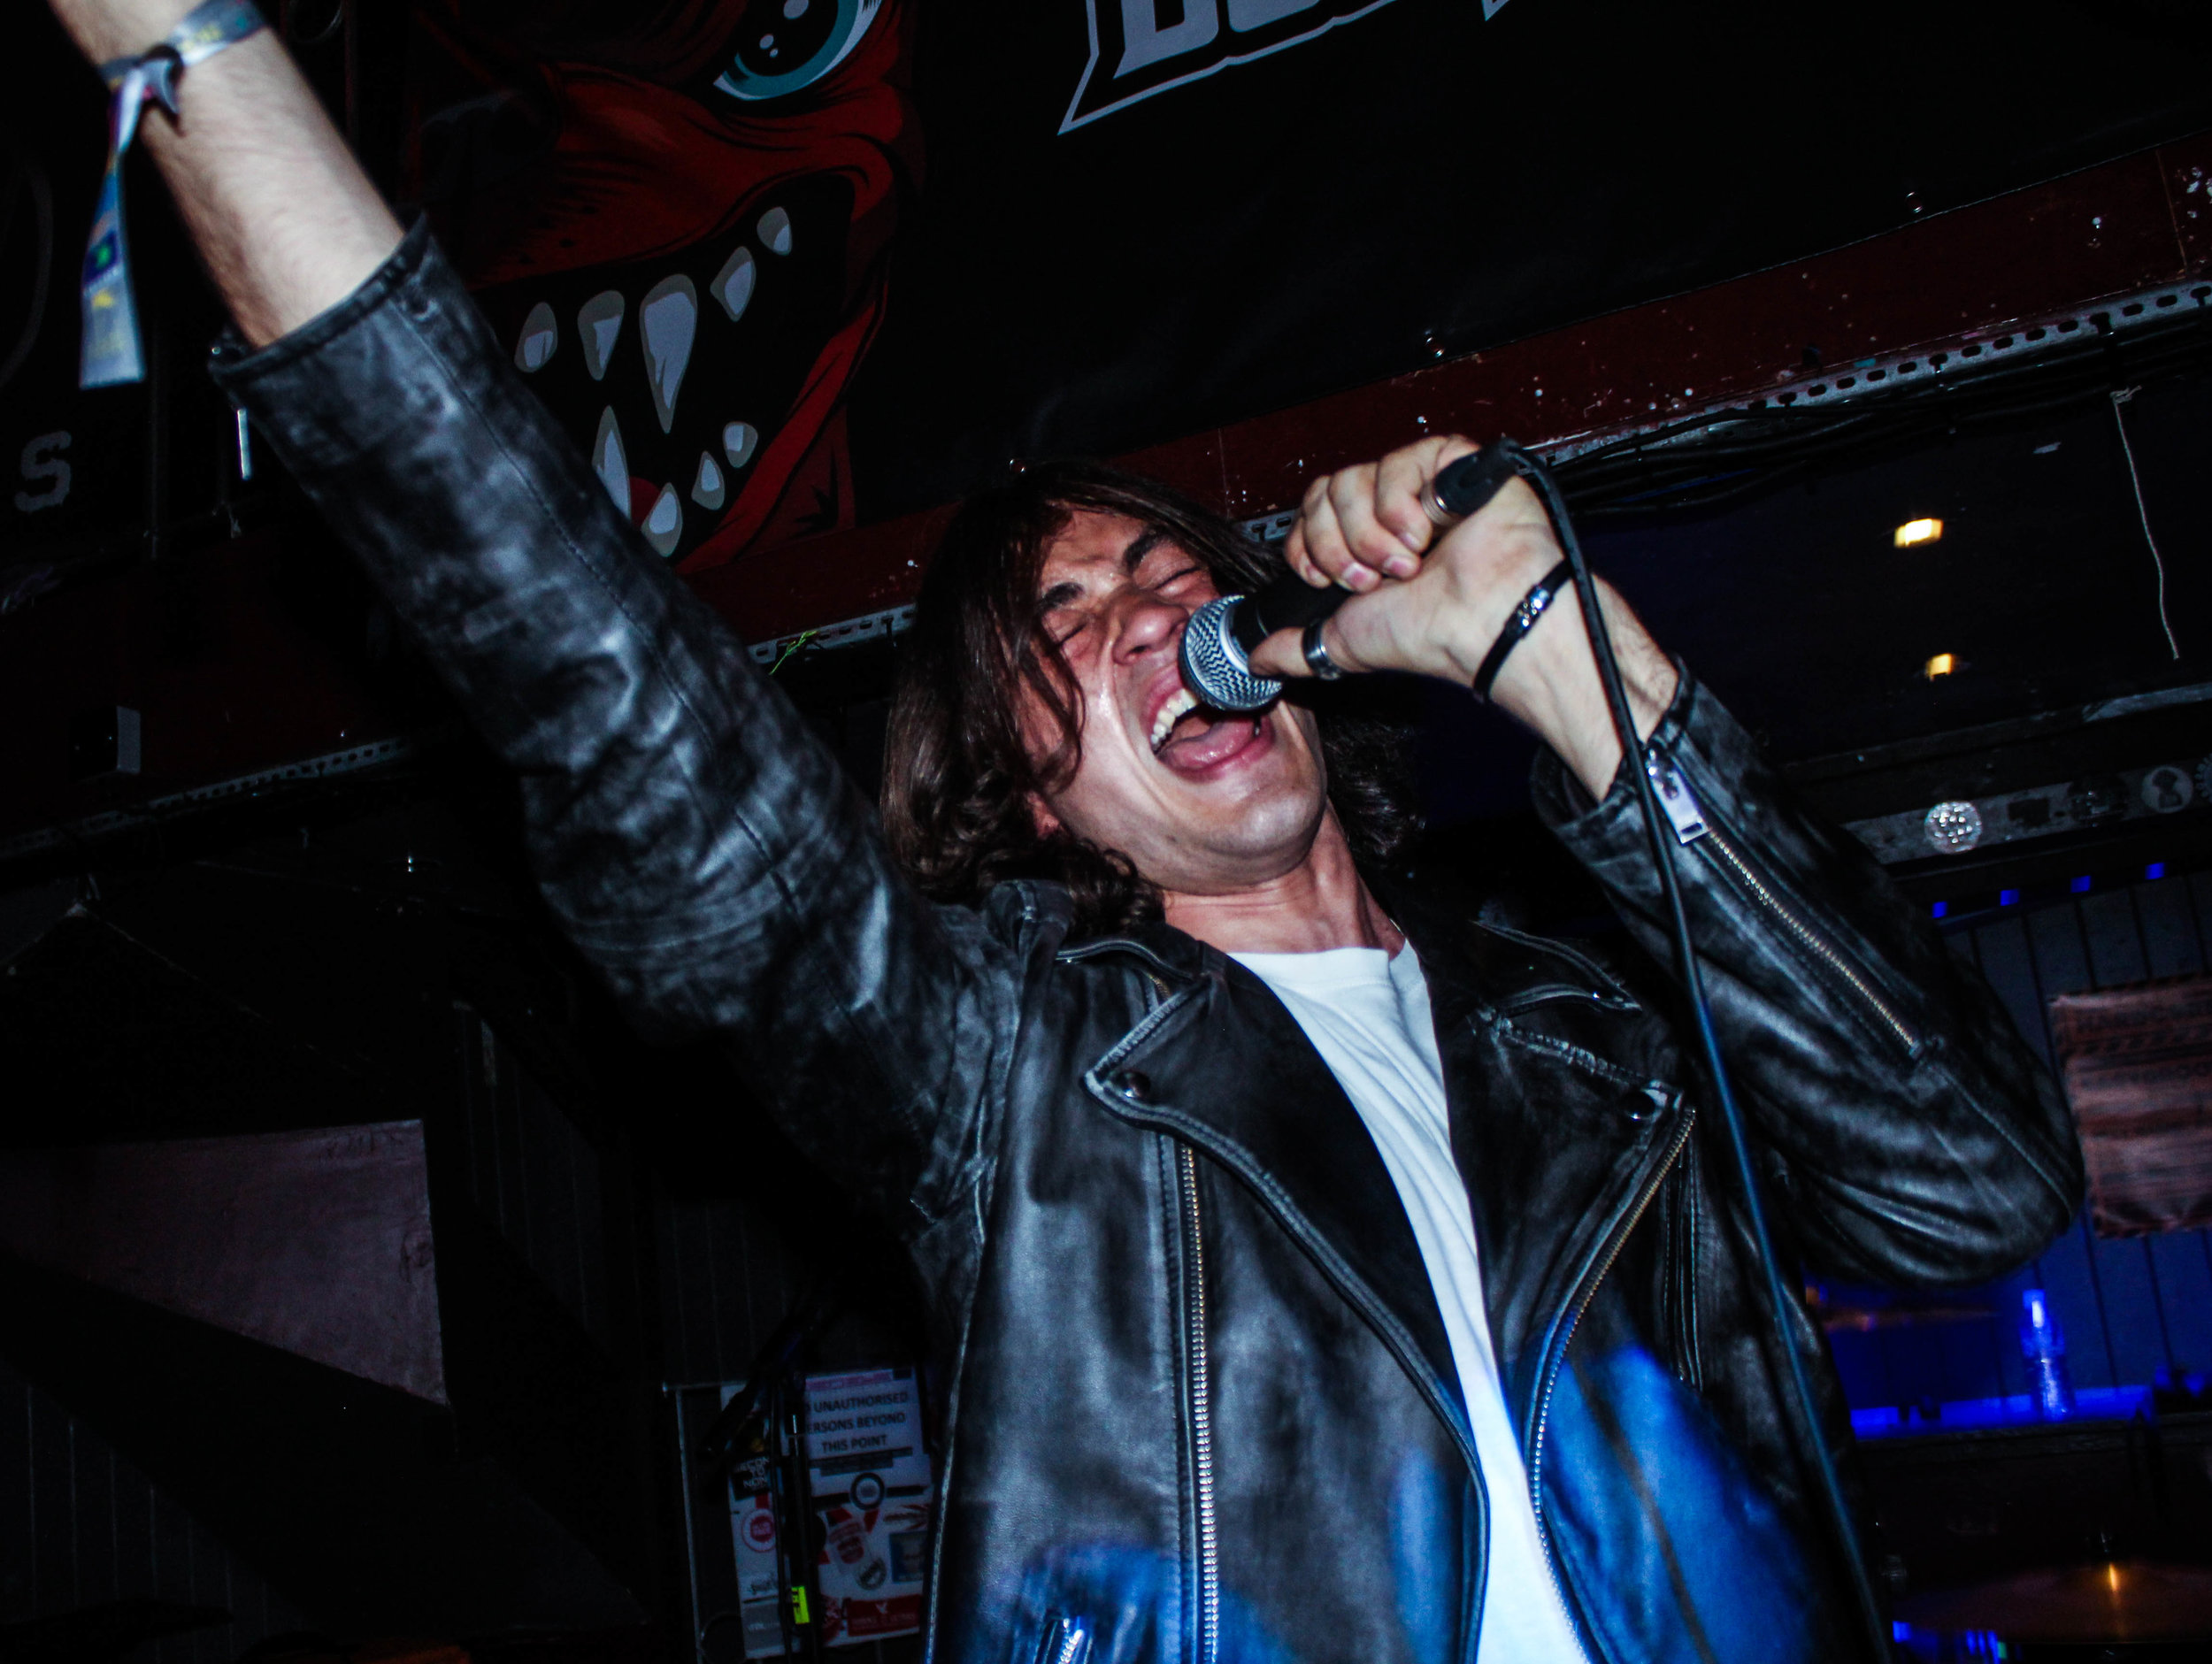 The Faim at The Great Escape - Photo © Concentus Music - Reproduction without permission not permitted